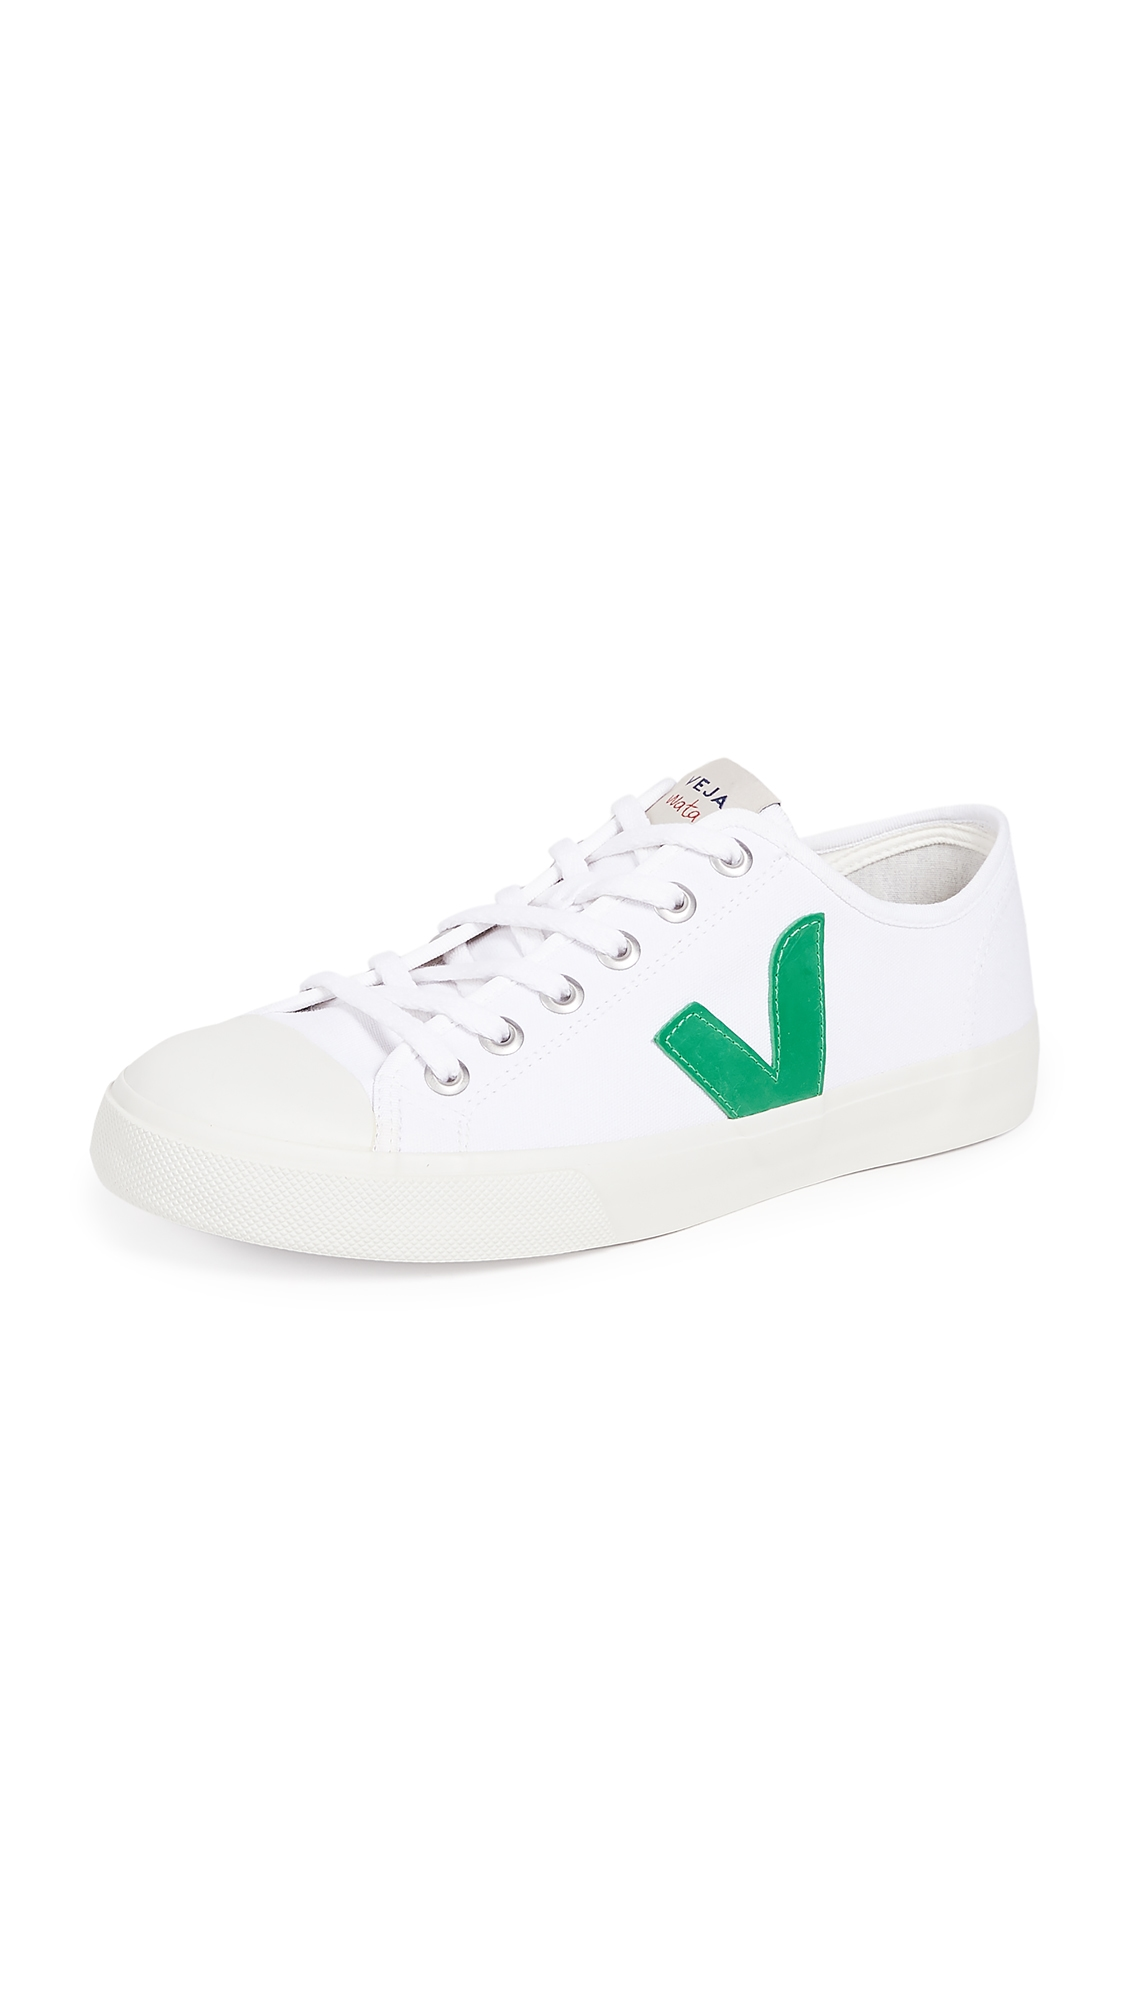 VEJA Wata Canvas Sneakers in White